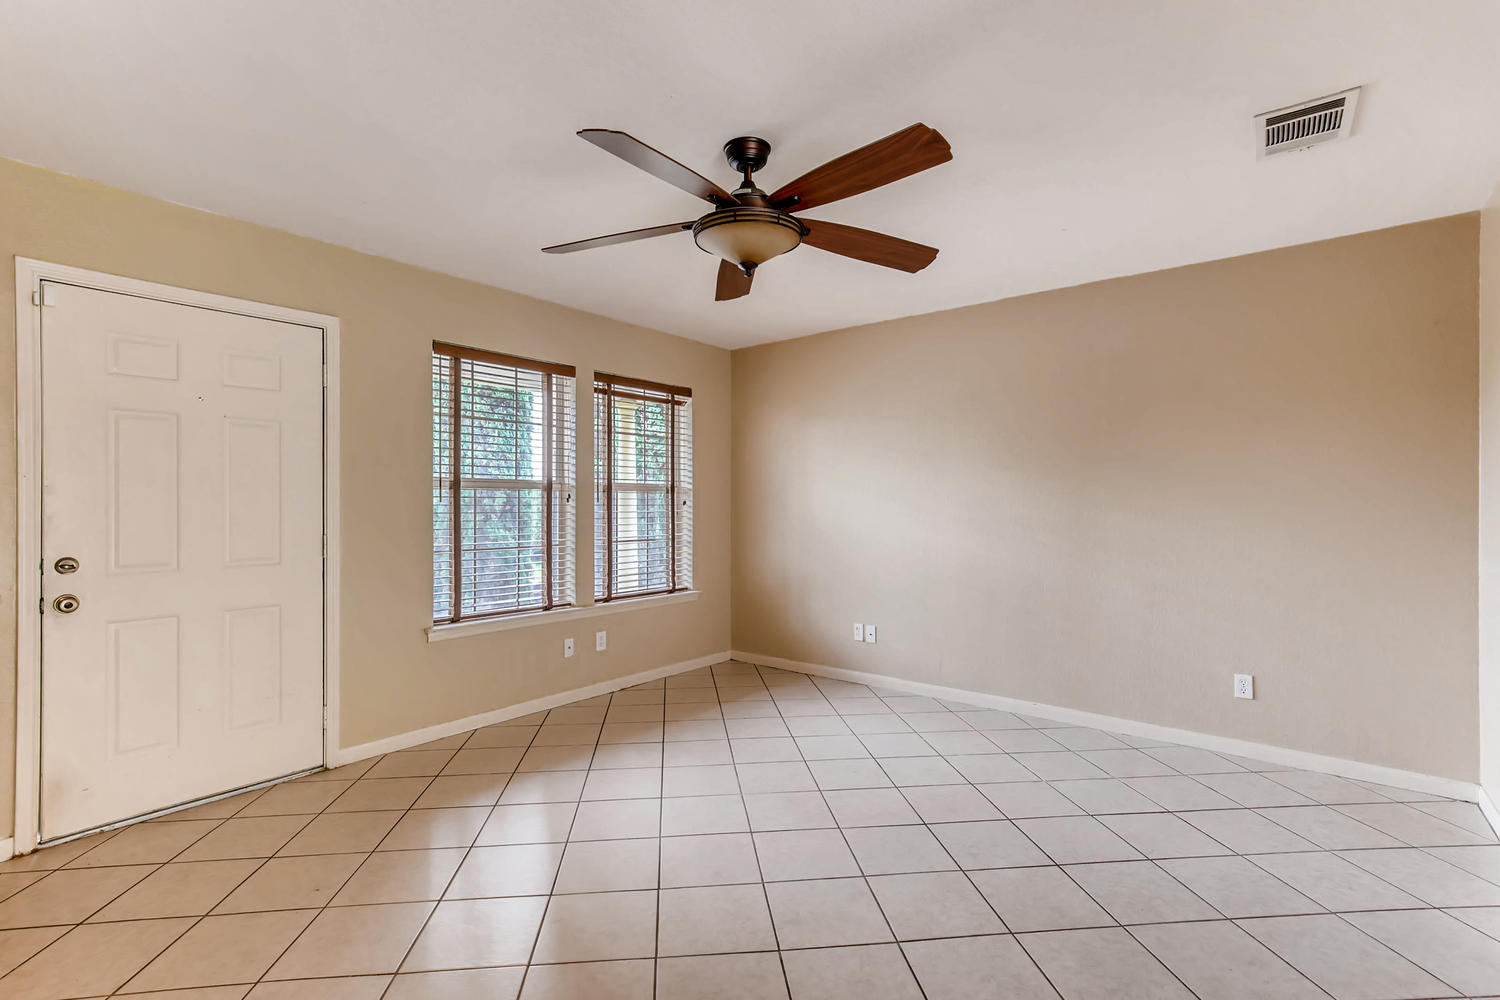 Photo of 2311 S Crossing Dr, Round Rock, TX, 78664